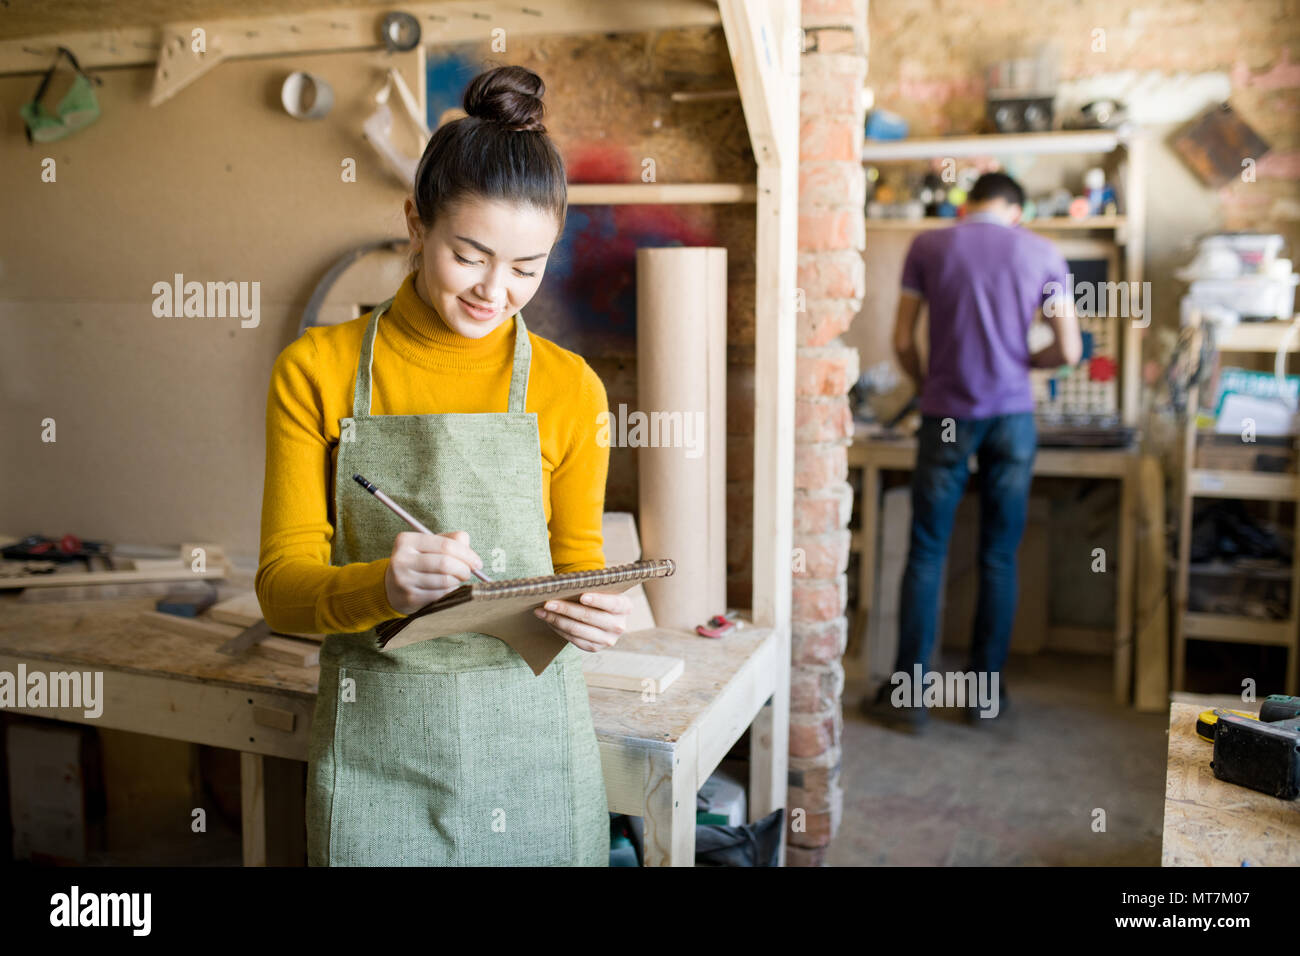 Cheerful Female Artisan in Workshop - Stock Image